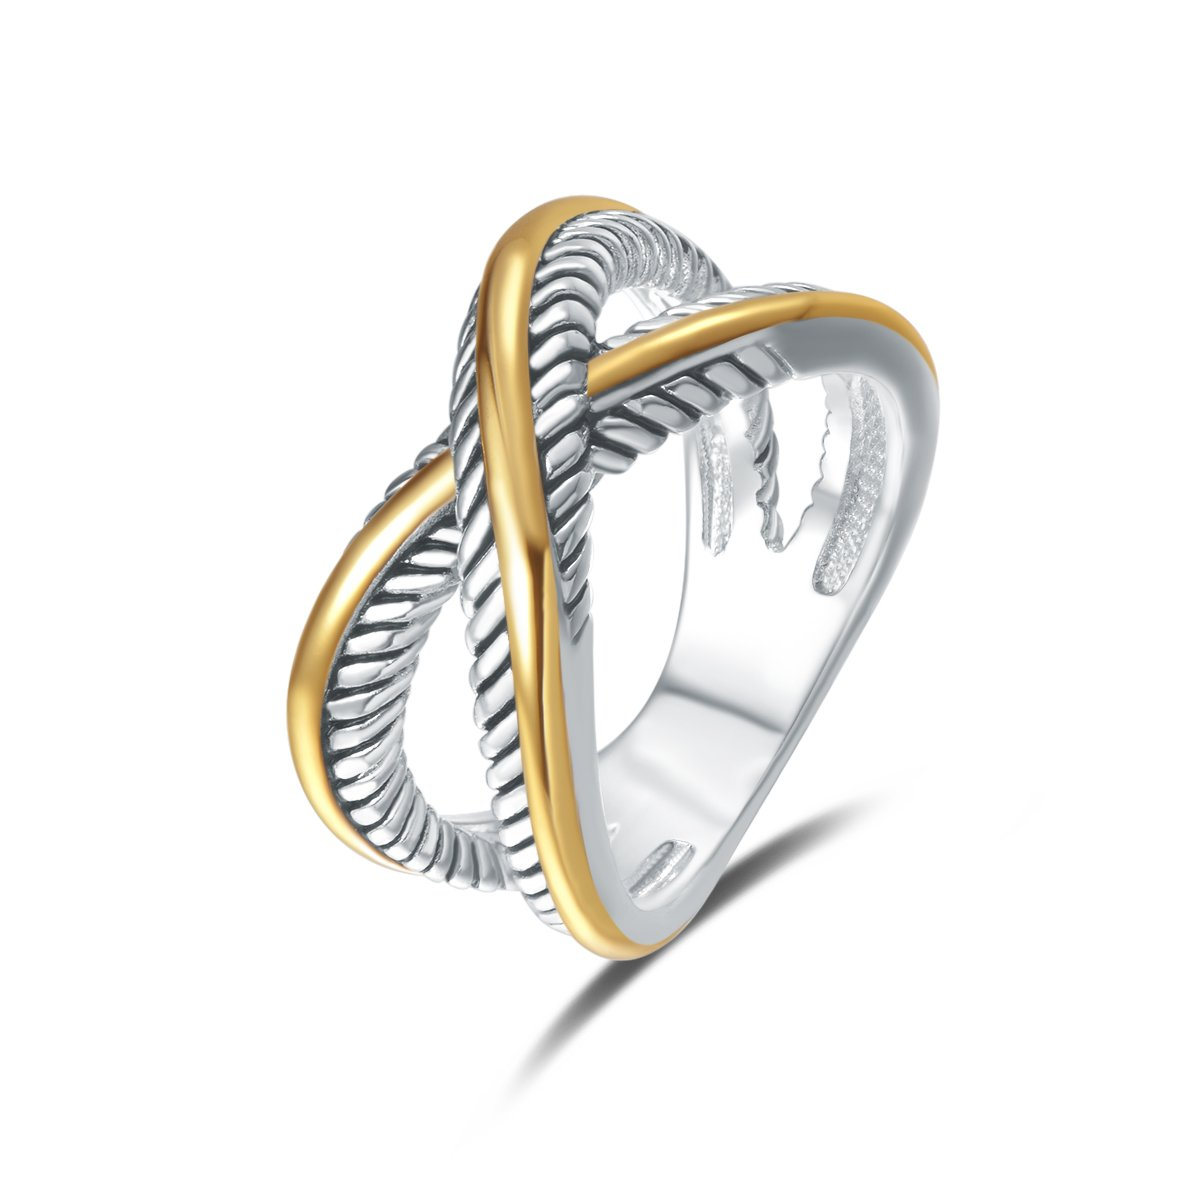 UNY Ring Vintage Designer Fashion Brand Women Valentine Gift Two Tone Plating Twisted Cable Wire Rings (7) by UNY